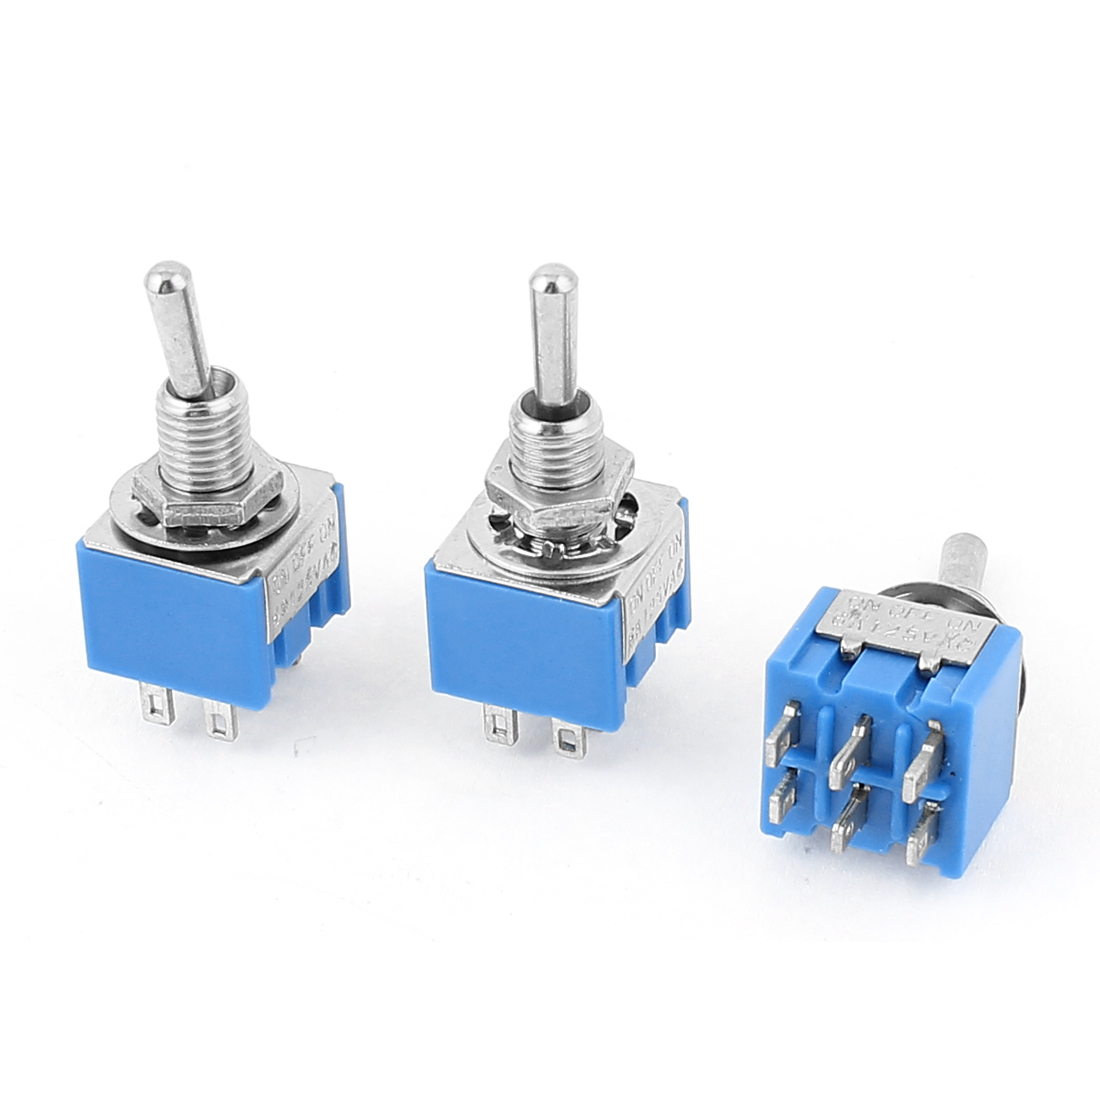 AC 125V 6A DPDT ON-OFF-ON 3 Positions 6 Terminals Latching Toggle Switch 3 Pcs